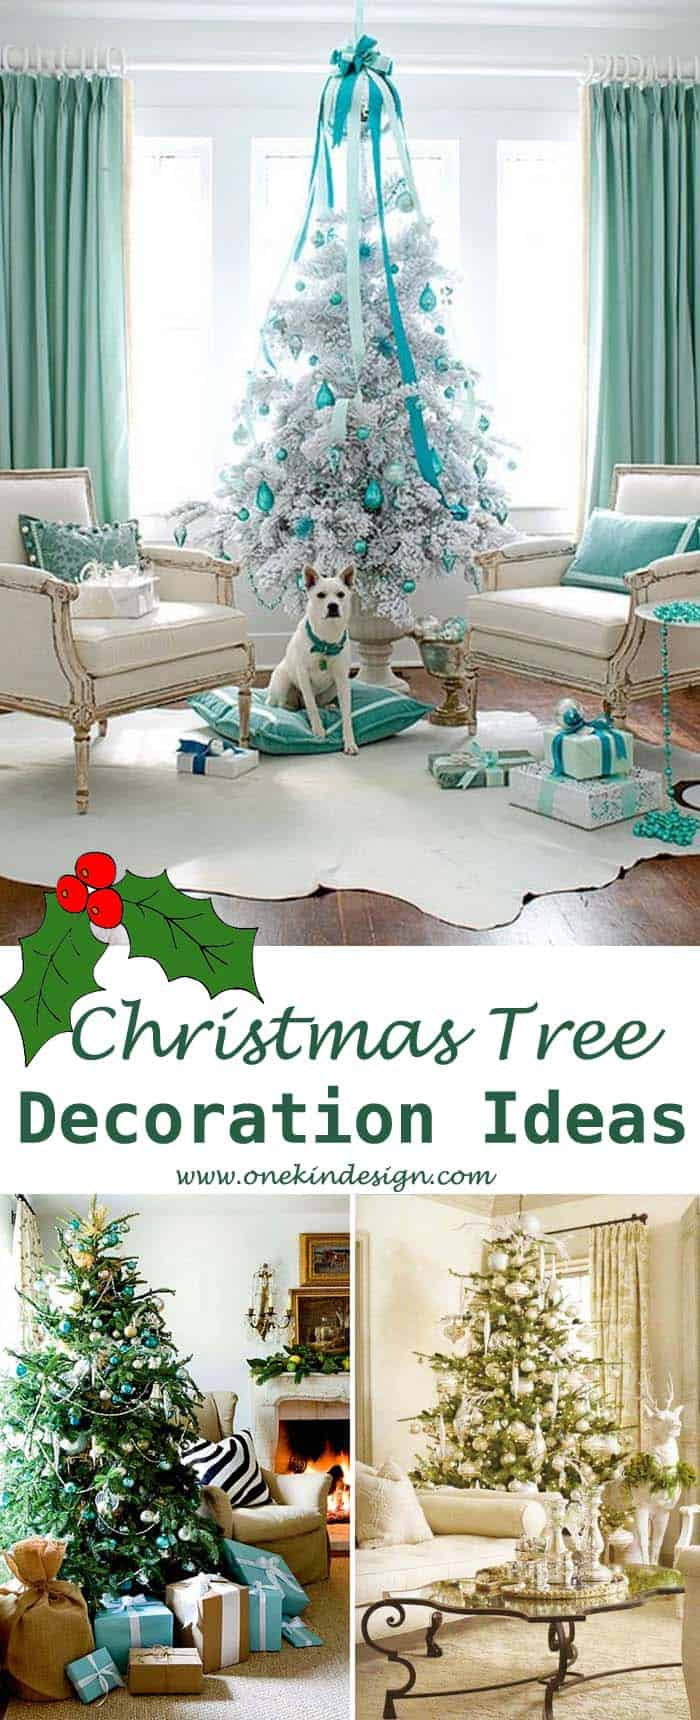 Christmas Tree Decoration Ideas-001-1 Kindesign